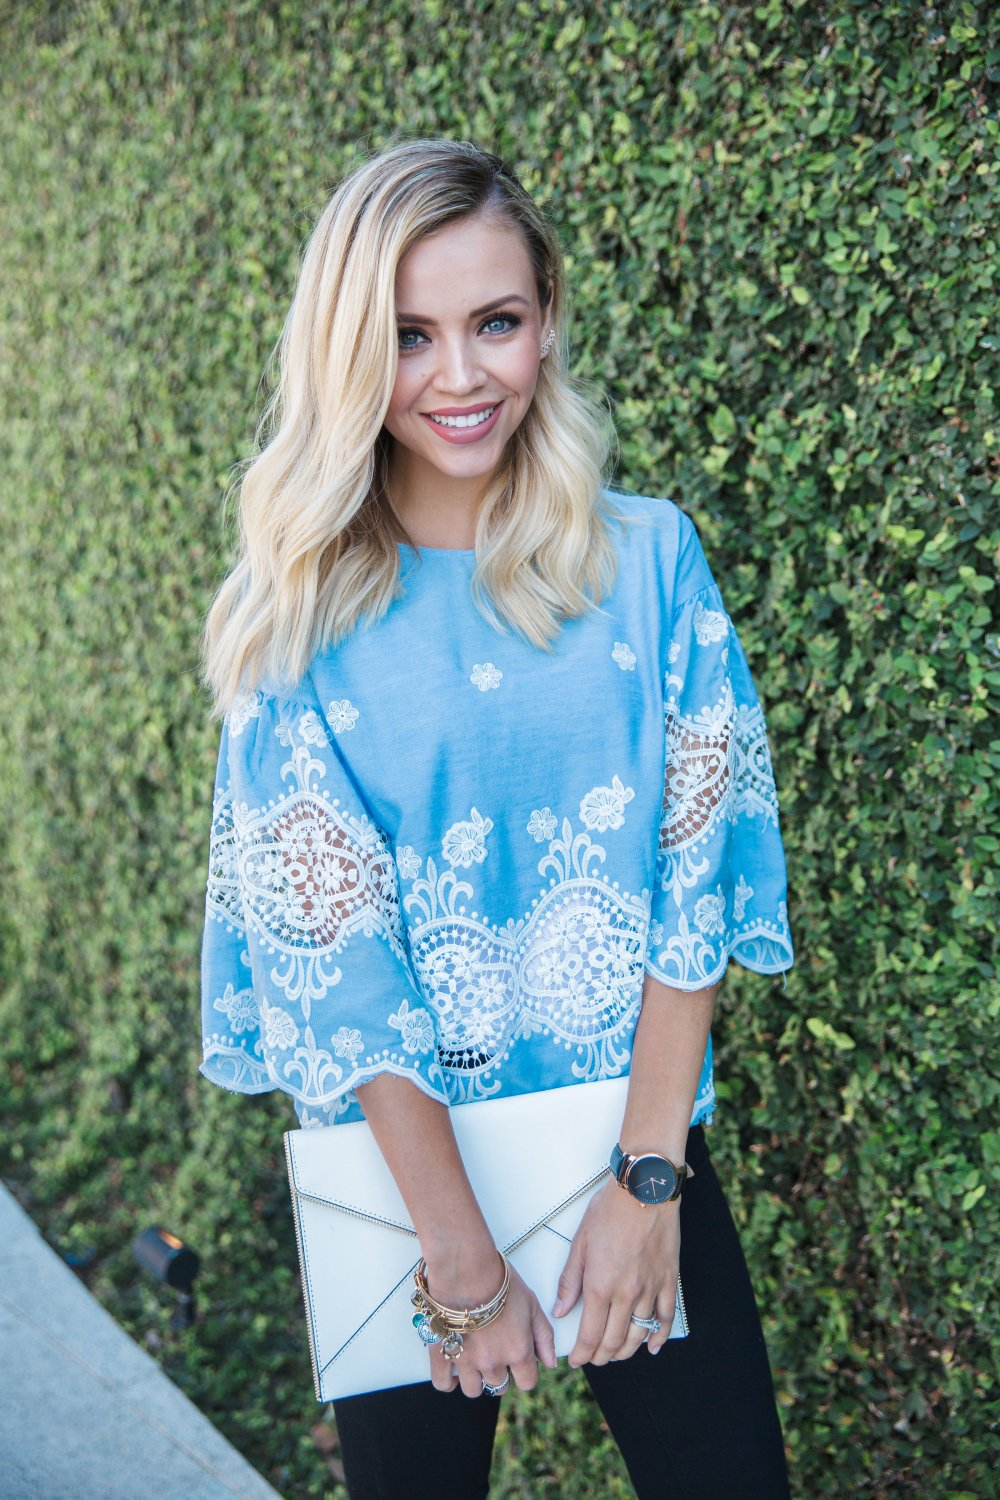 Destiny_Thompson_Blue_Top_Fashion_Blogger